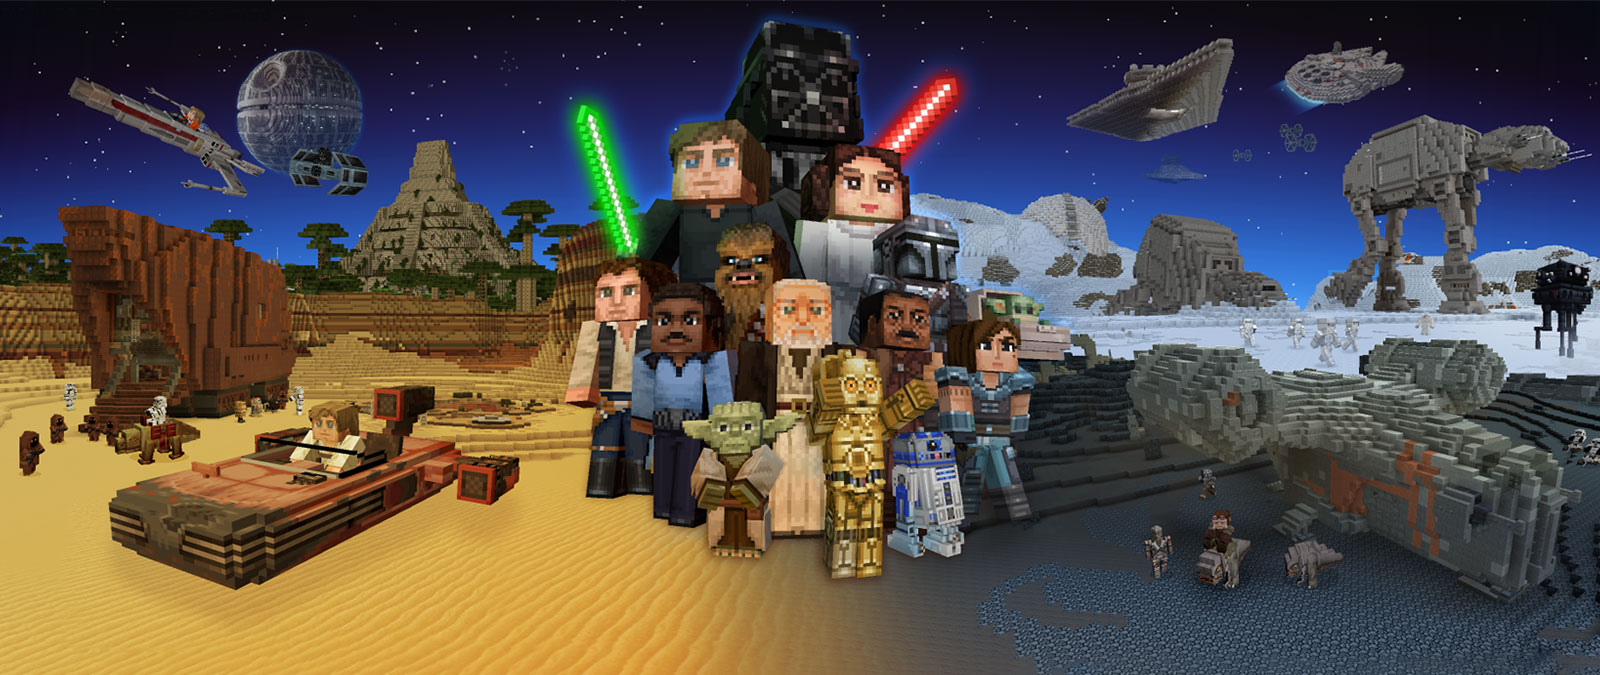 Characters from Star Wars in Minecraft style